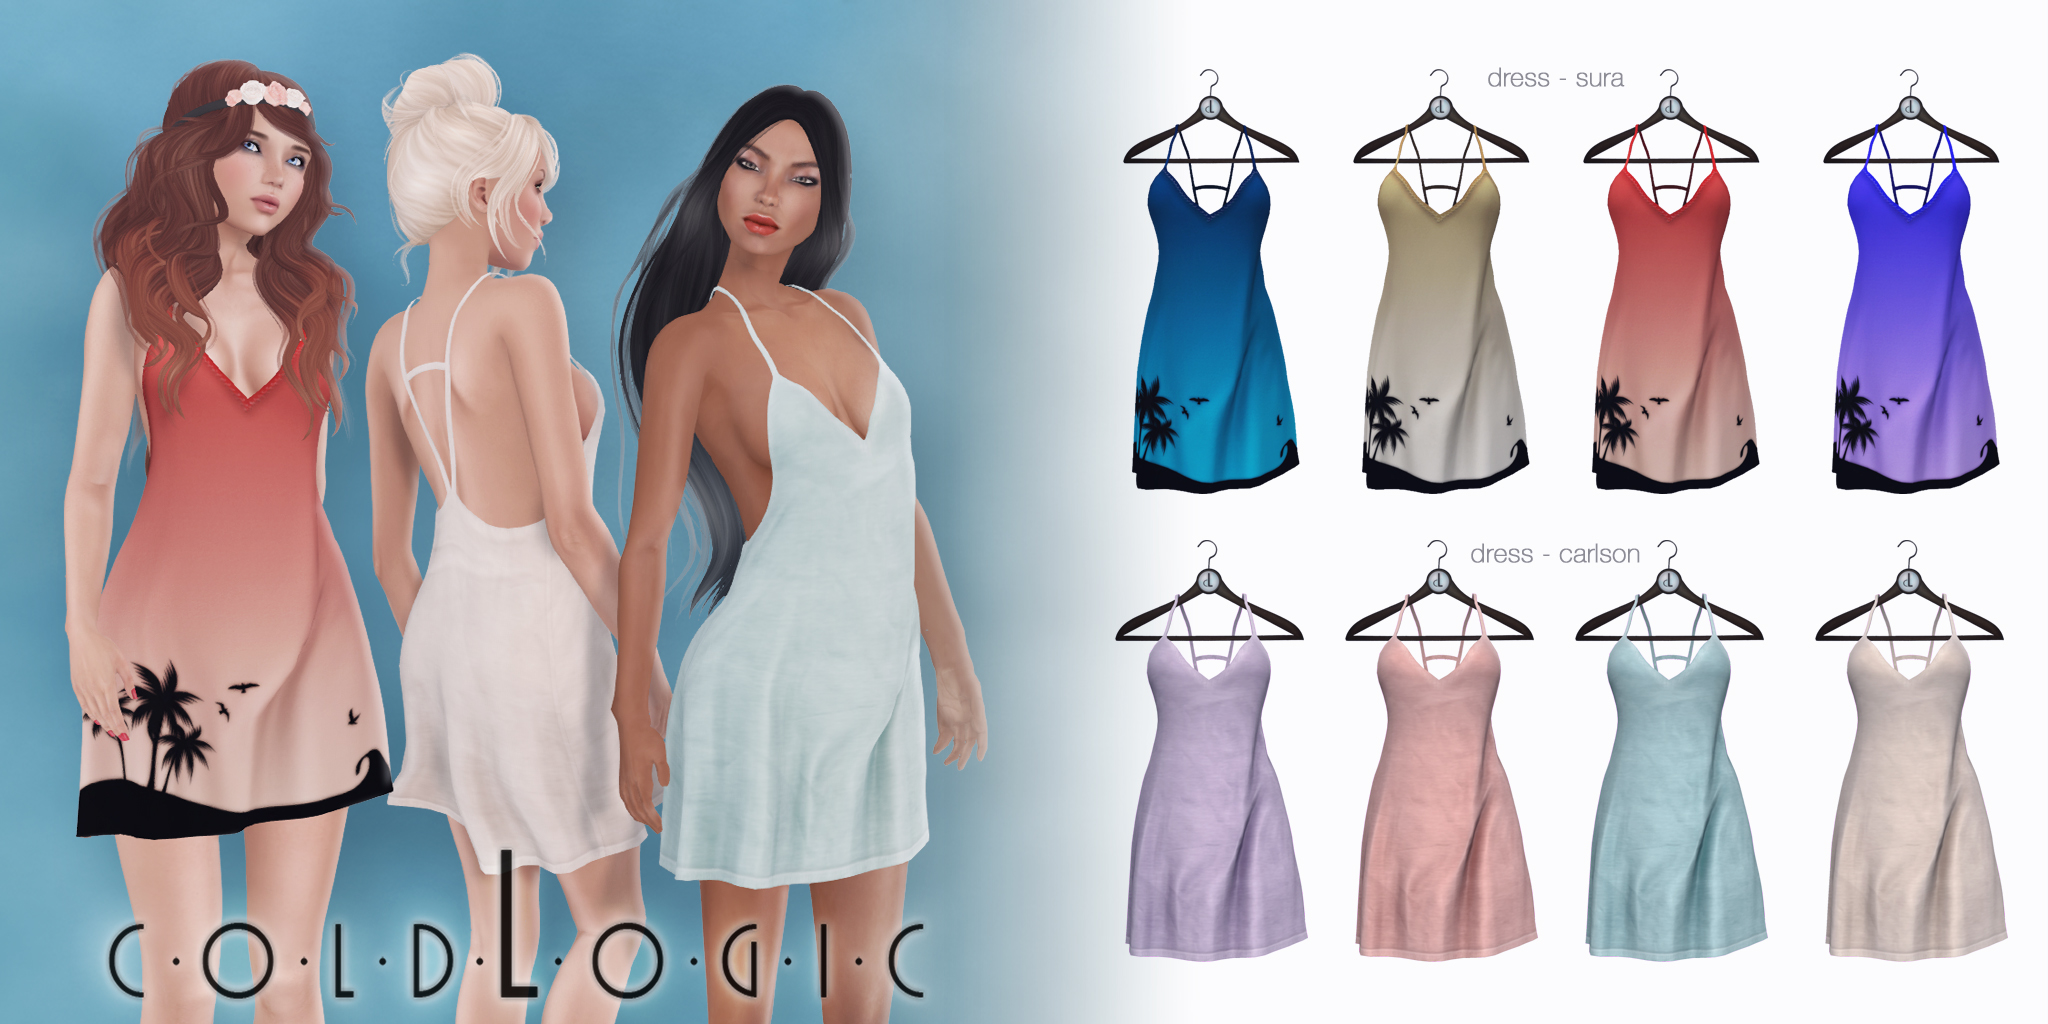 coldLogic dress - sura & carlson